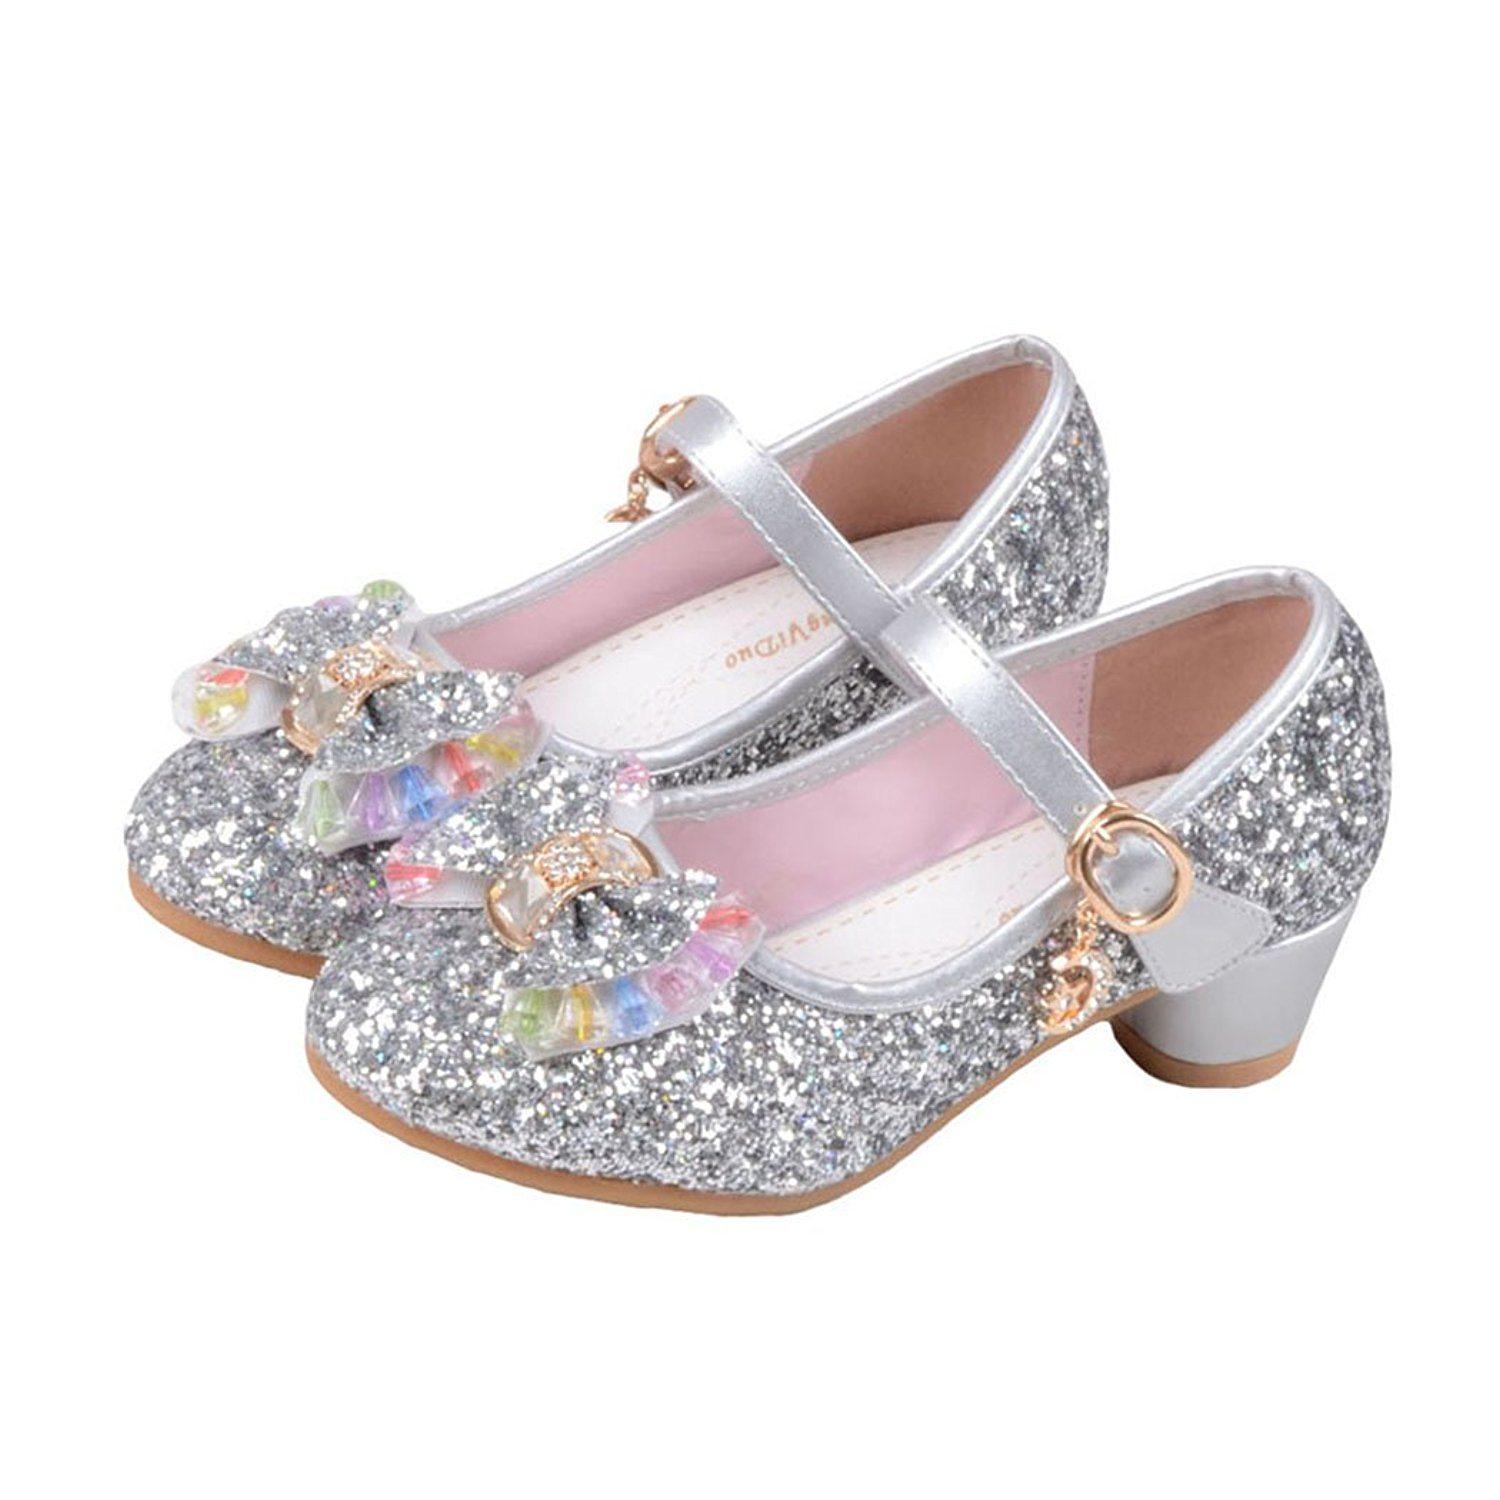 c162431a23e Get Quotations · Raylans Girls Glitter Sandals Mary Jane Shoes Glitter Low  Heels Princess Cosplay Dress Shoes